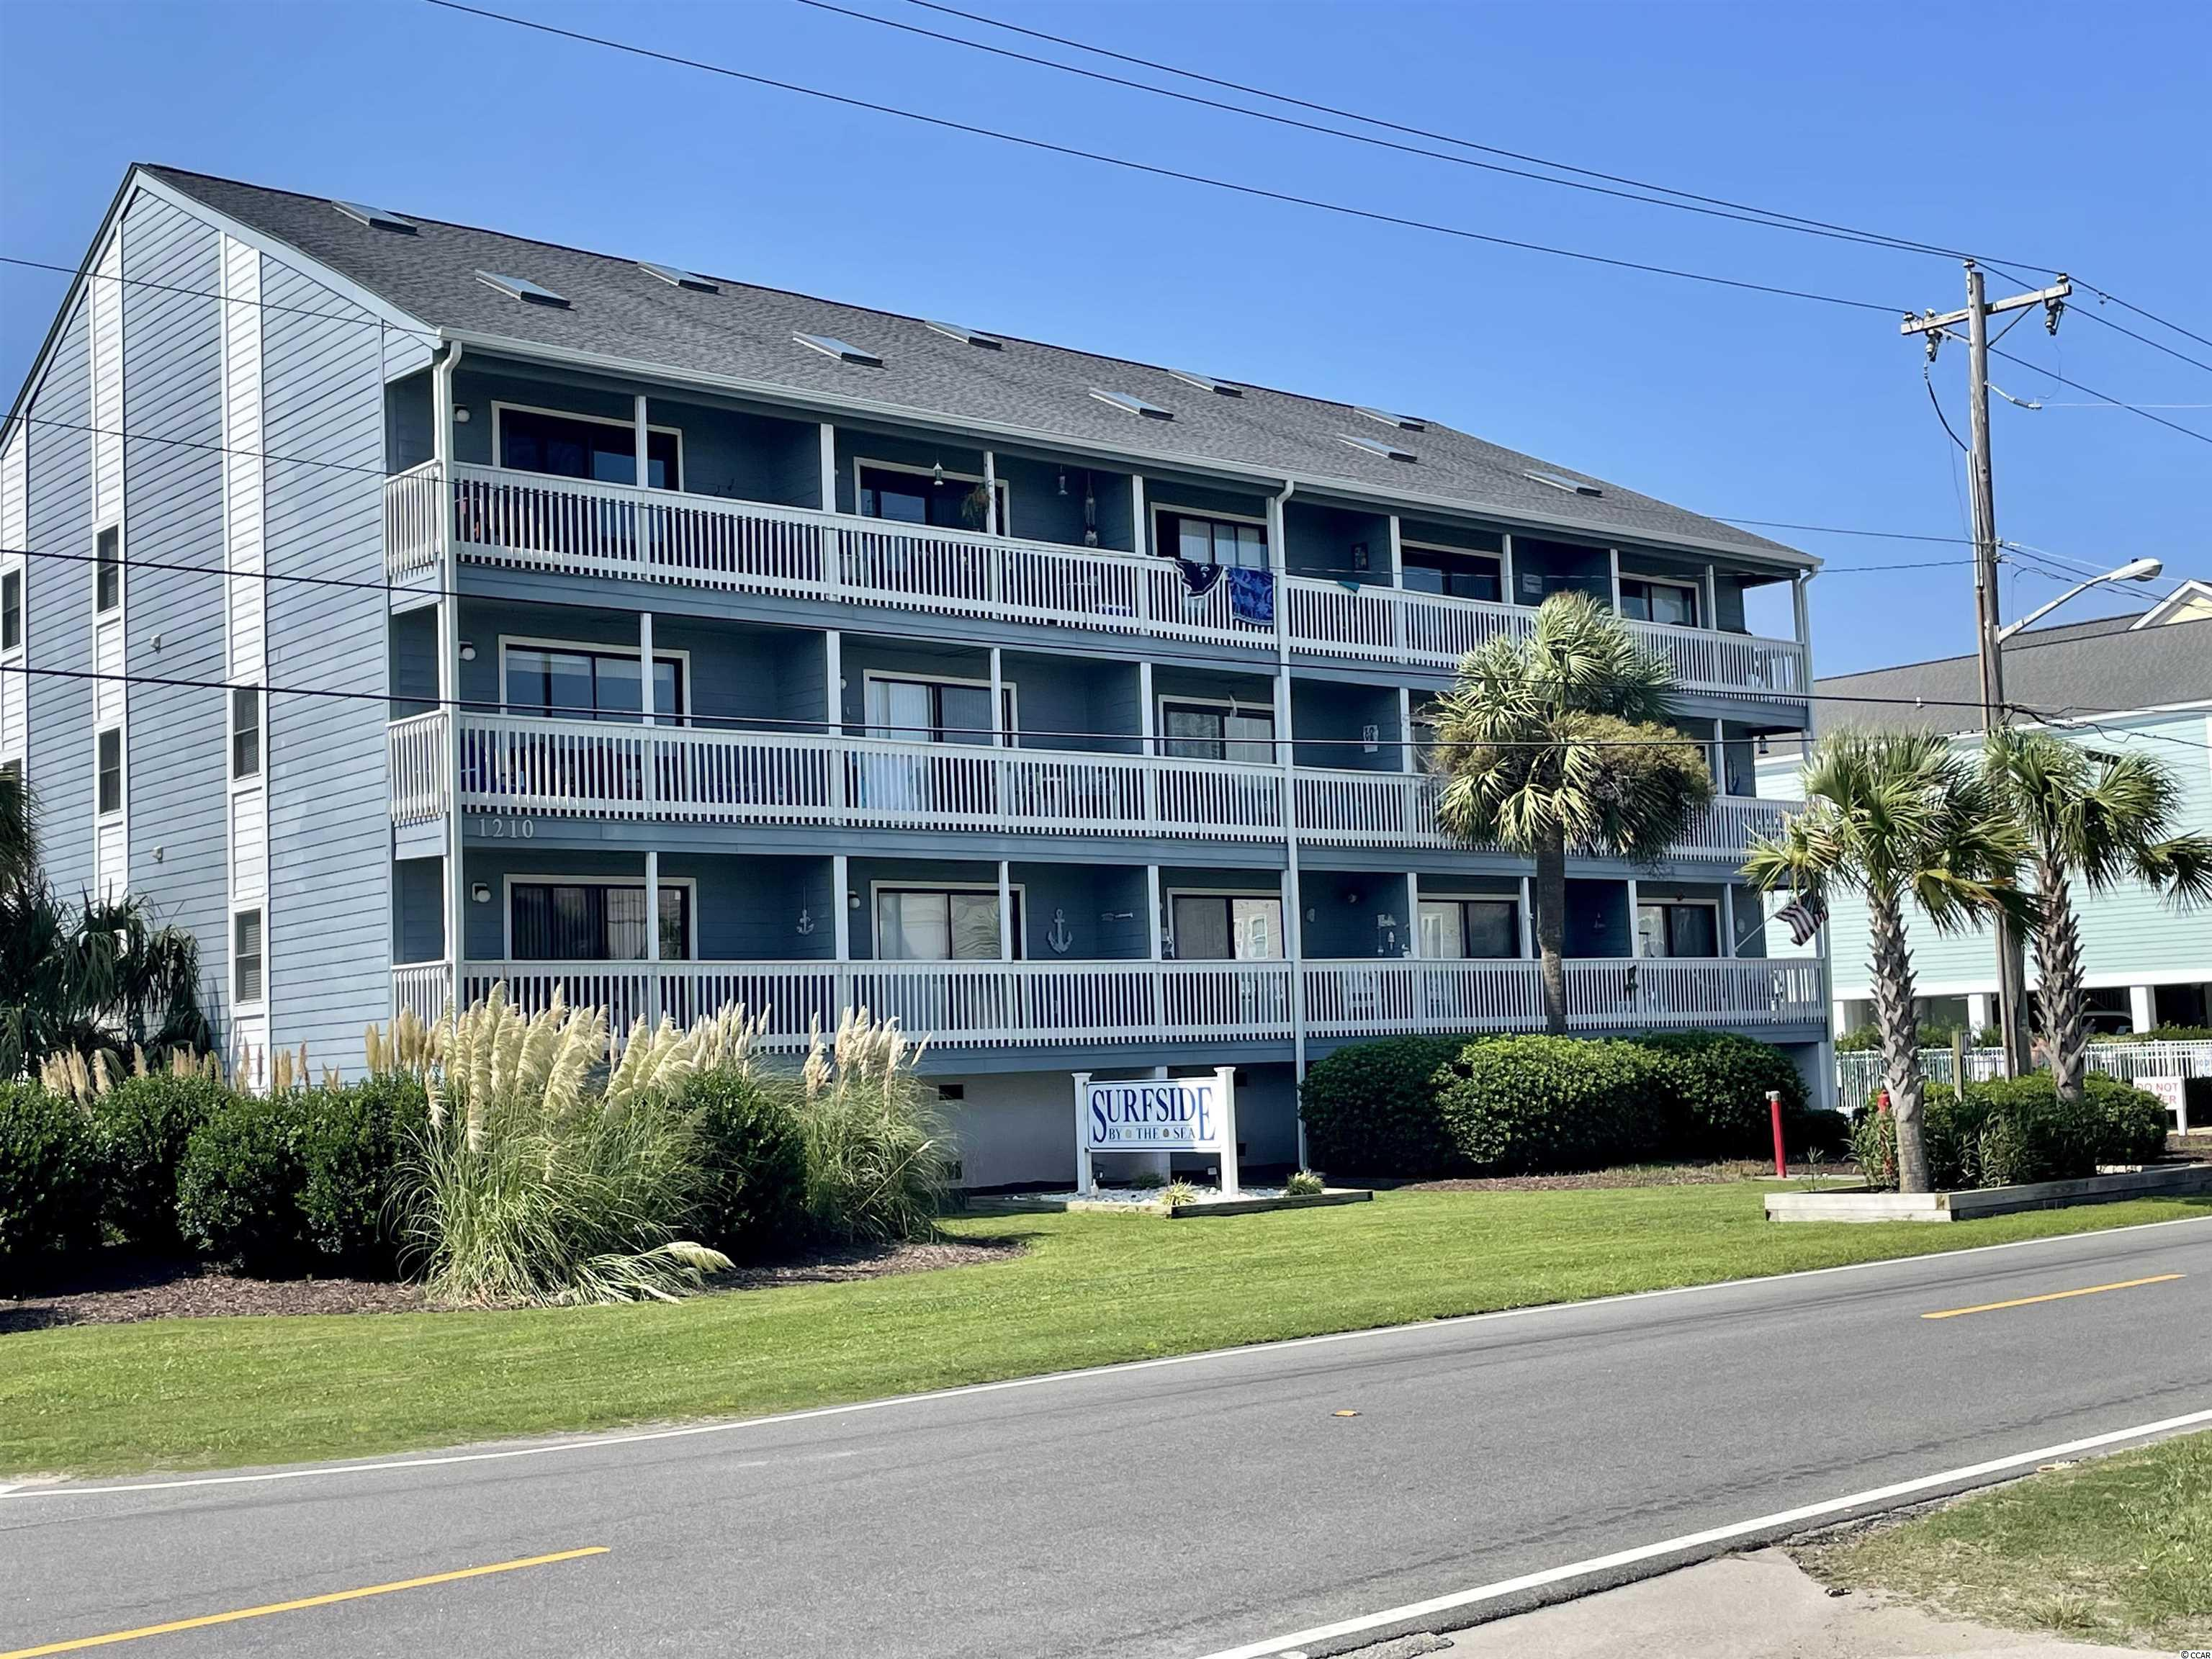 """Come see this beautifully furnished and well maintained 3 bedroom/2 bath, end unit, top floor second row beach condo with enticing ocean views in Surfside Beach! Public beach access directly across the street. You are just steps away from """" Toes in the sand"""".  Villa 305 is located on the southern end of the complex with plenty of natural light throughout. The spacious open living room with vaulted ceilings & skylights, a fully equipped  kitchen with a breakfast bar and dining area that are all accessible to a covered porch facing the ocean with breathtaking views! Two nice size bedrooms ( 2 twins and a queen) and a bath are on the main level along with the laundry area. Just off the living area, a stairway leads to a large 12 x 16 lofted master bedroom( queen) with a sitting area, a 5 x5 walk in closet and bath. Bedrooms are carpeted and all living areas are luxury vinyl plank flooring. Many upgrades and improvements to include: 2012- new HVAC, hot water heater, ceiling fans 2013- smooth ceilings, granite counter tops in kitchen, undermount sink with new plumbing, new stove & microwave, 2015- new skylights and roof, new washer & dryer, luxury vinyl plank flooring and carpet, 2017 pool resurfaced 2020- new refrigerator, dishwasher, garbage disposal, sink fixture, lights and fixtures in both bathrooms, new furniture throughout except the two twin beds. Couch in living room is a sleeper sofa.  2021- new 8 ft hurricane rated sliding glass door. The complex is beautifully landscaped, has a  large community pool, plenty of parking and a small picnic area for cookouts. Owners use this as a 2nd home and has never been rented."""